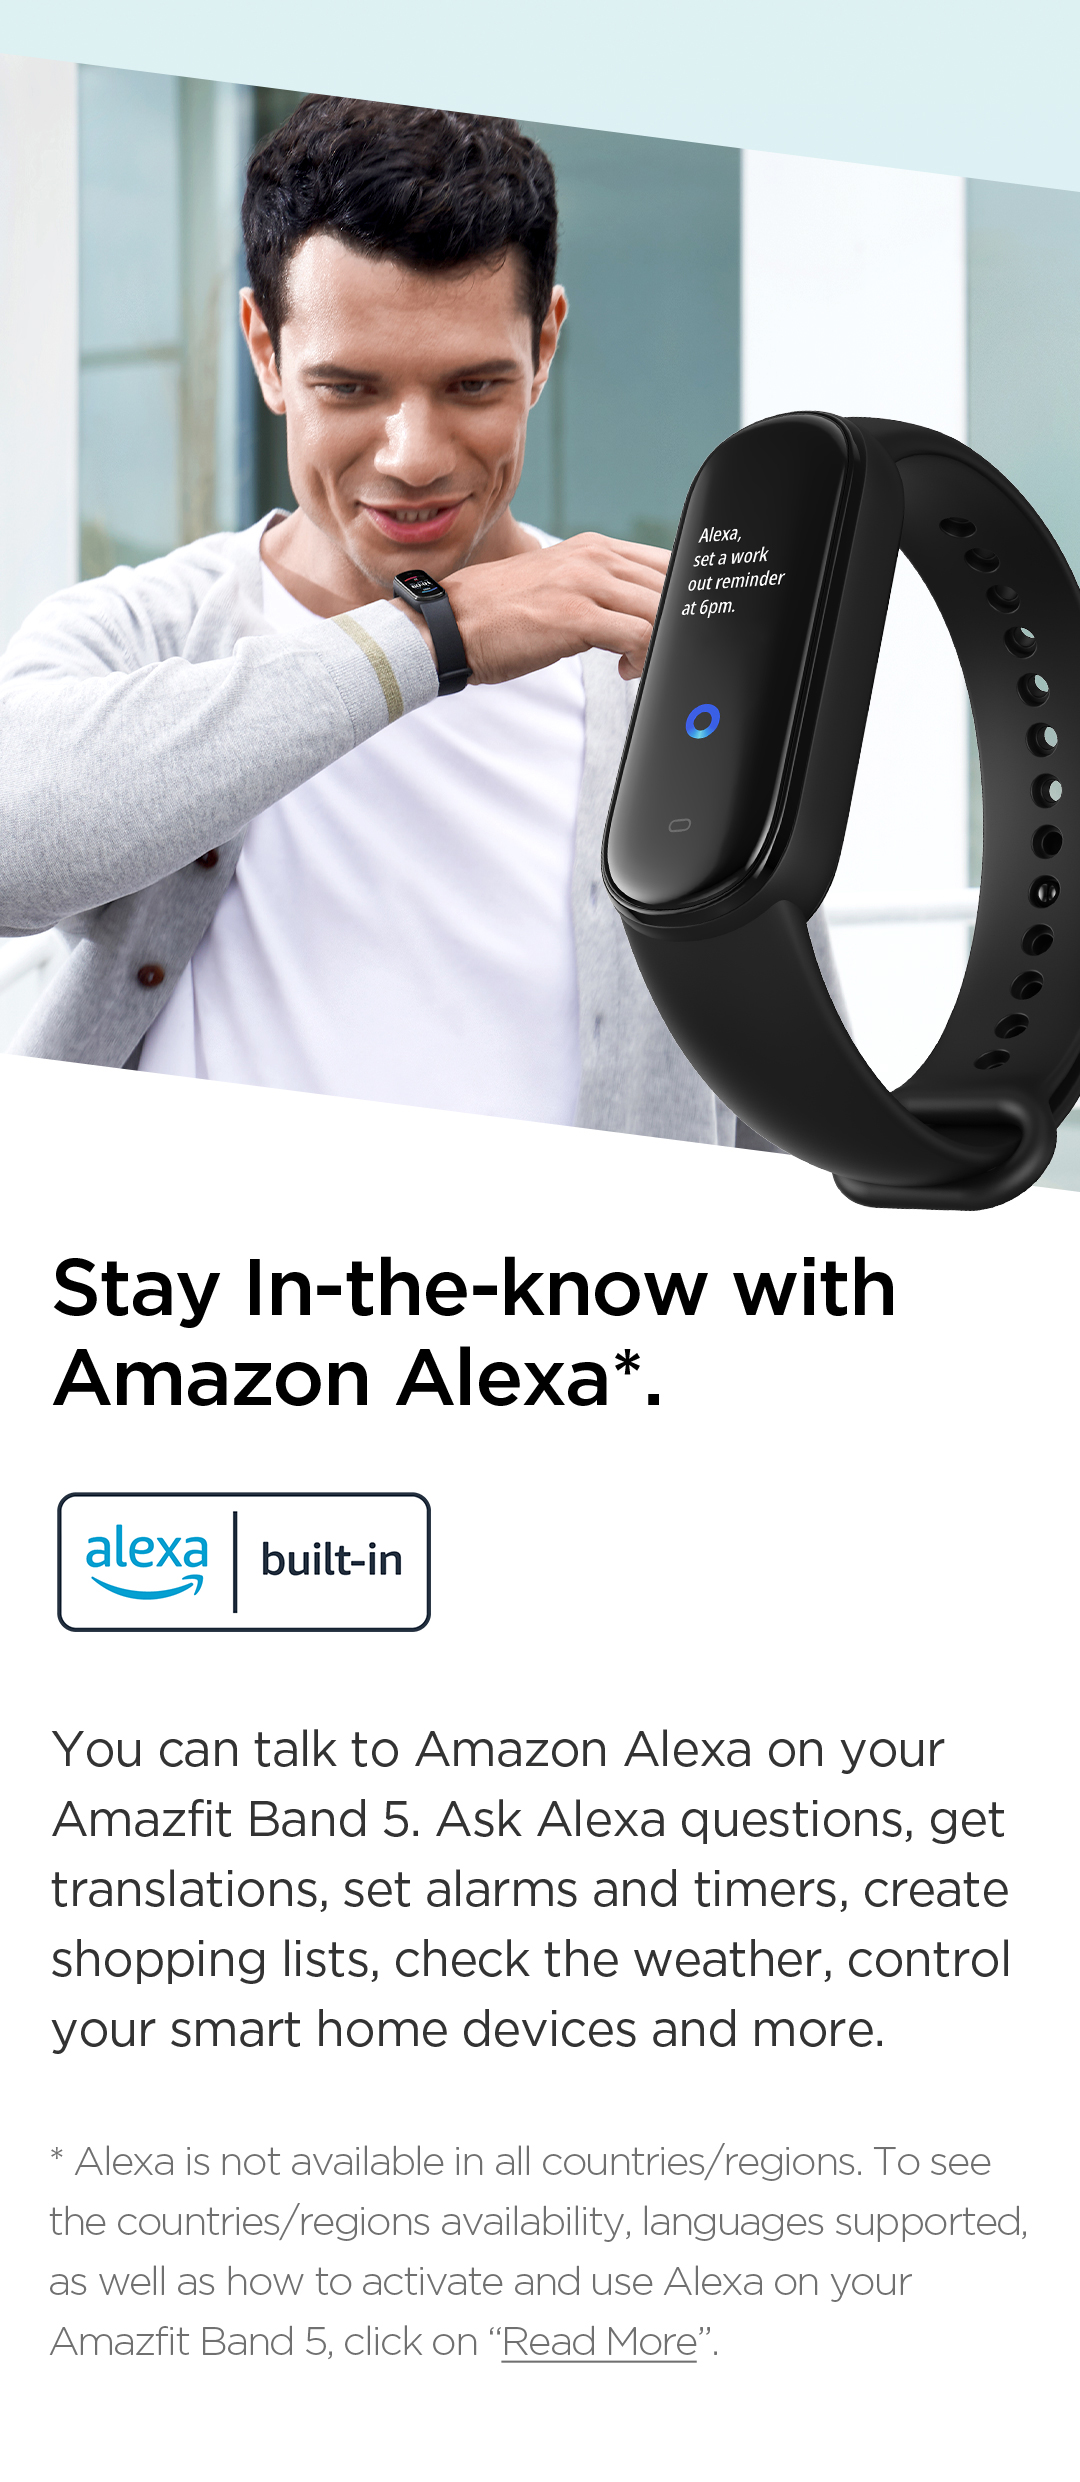 Amazfit Band 5 with Alexa Build in